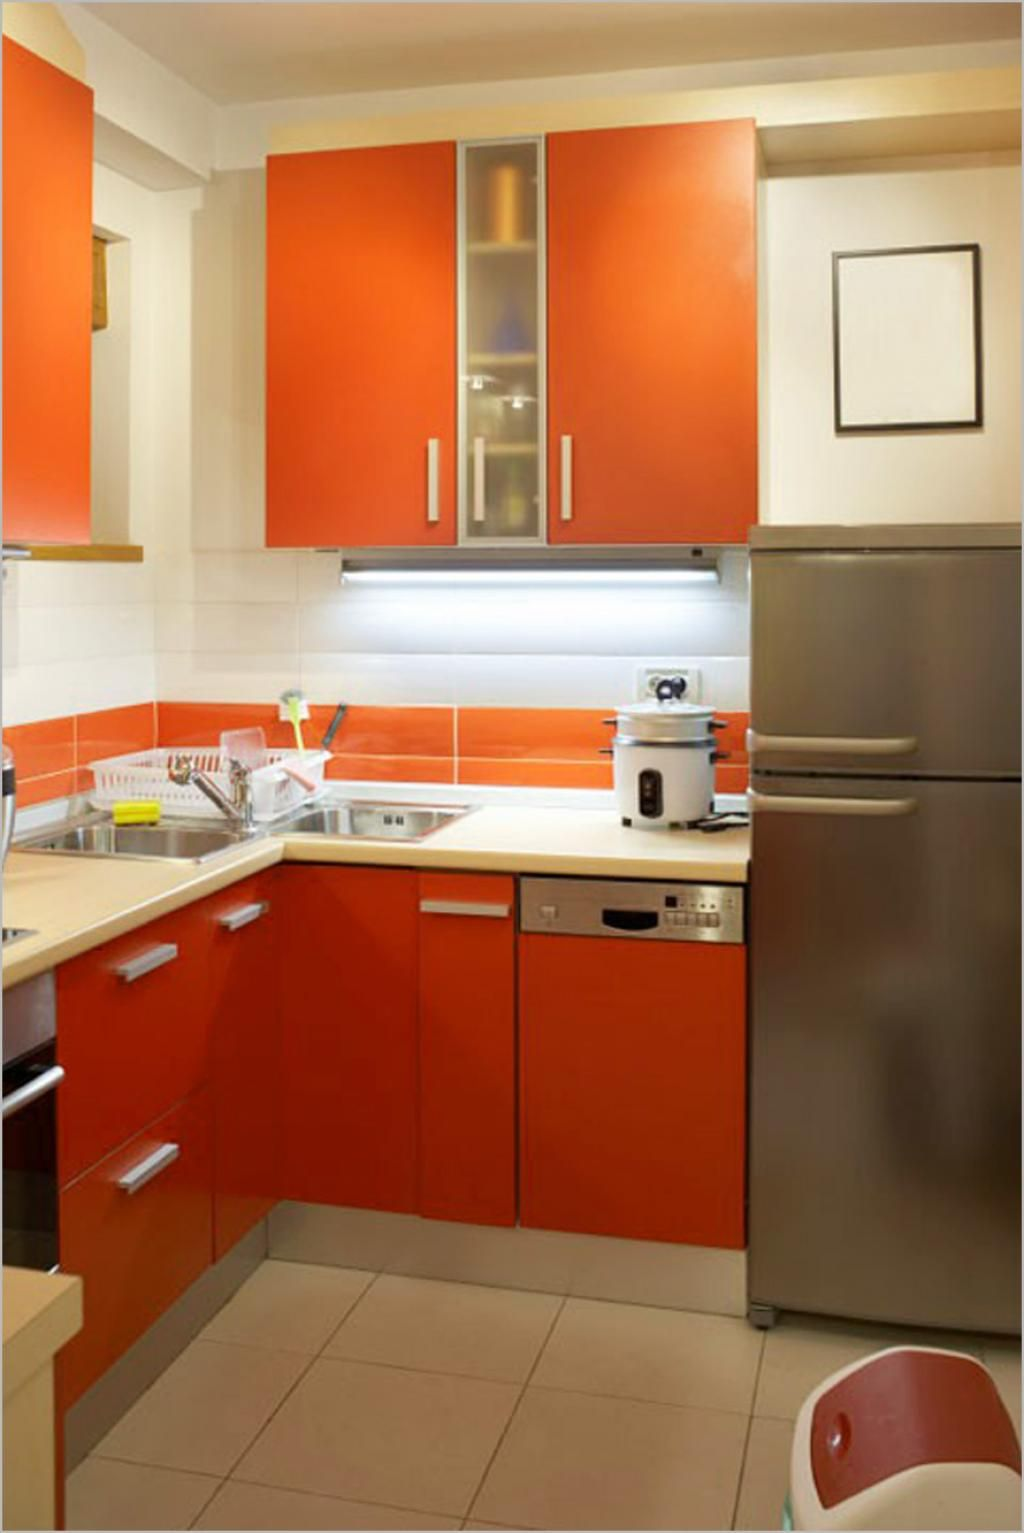 Cool Small Kitchen 21 Cool Small Kitchen Design Ideas Kitchen Small Small Kitchens